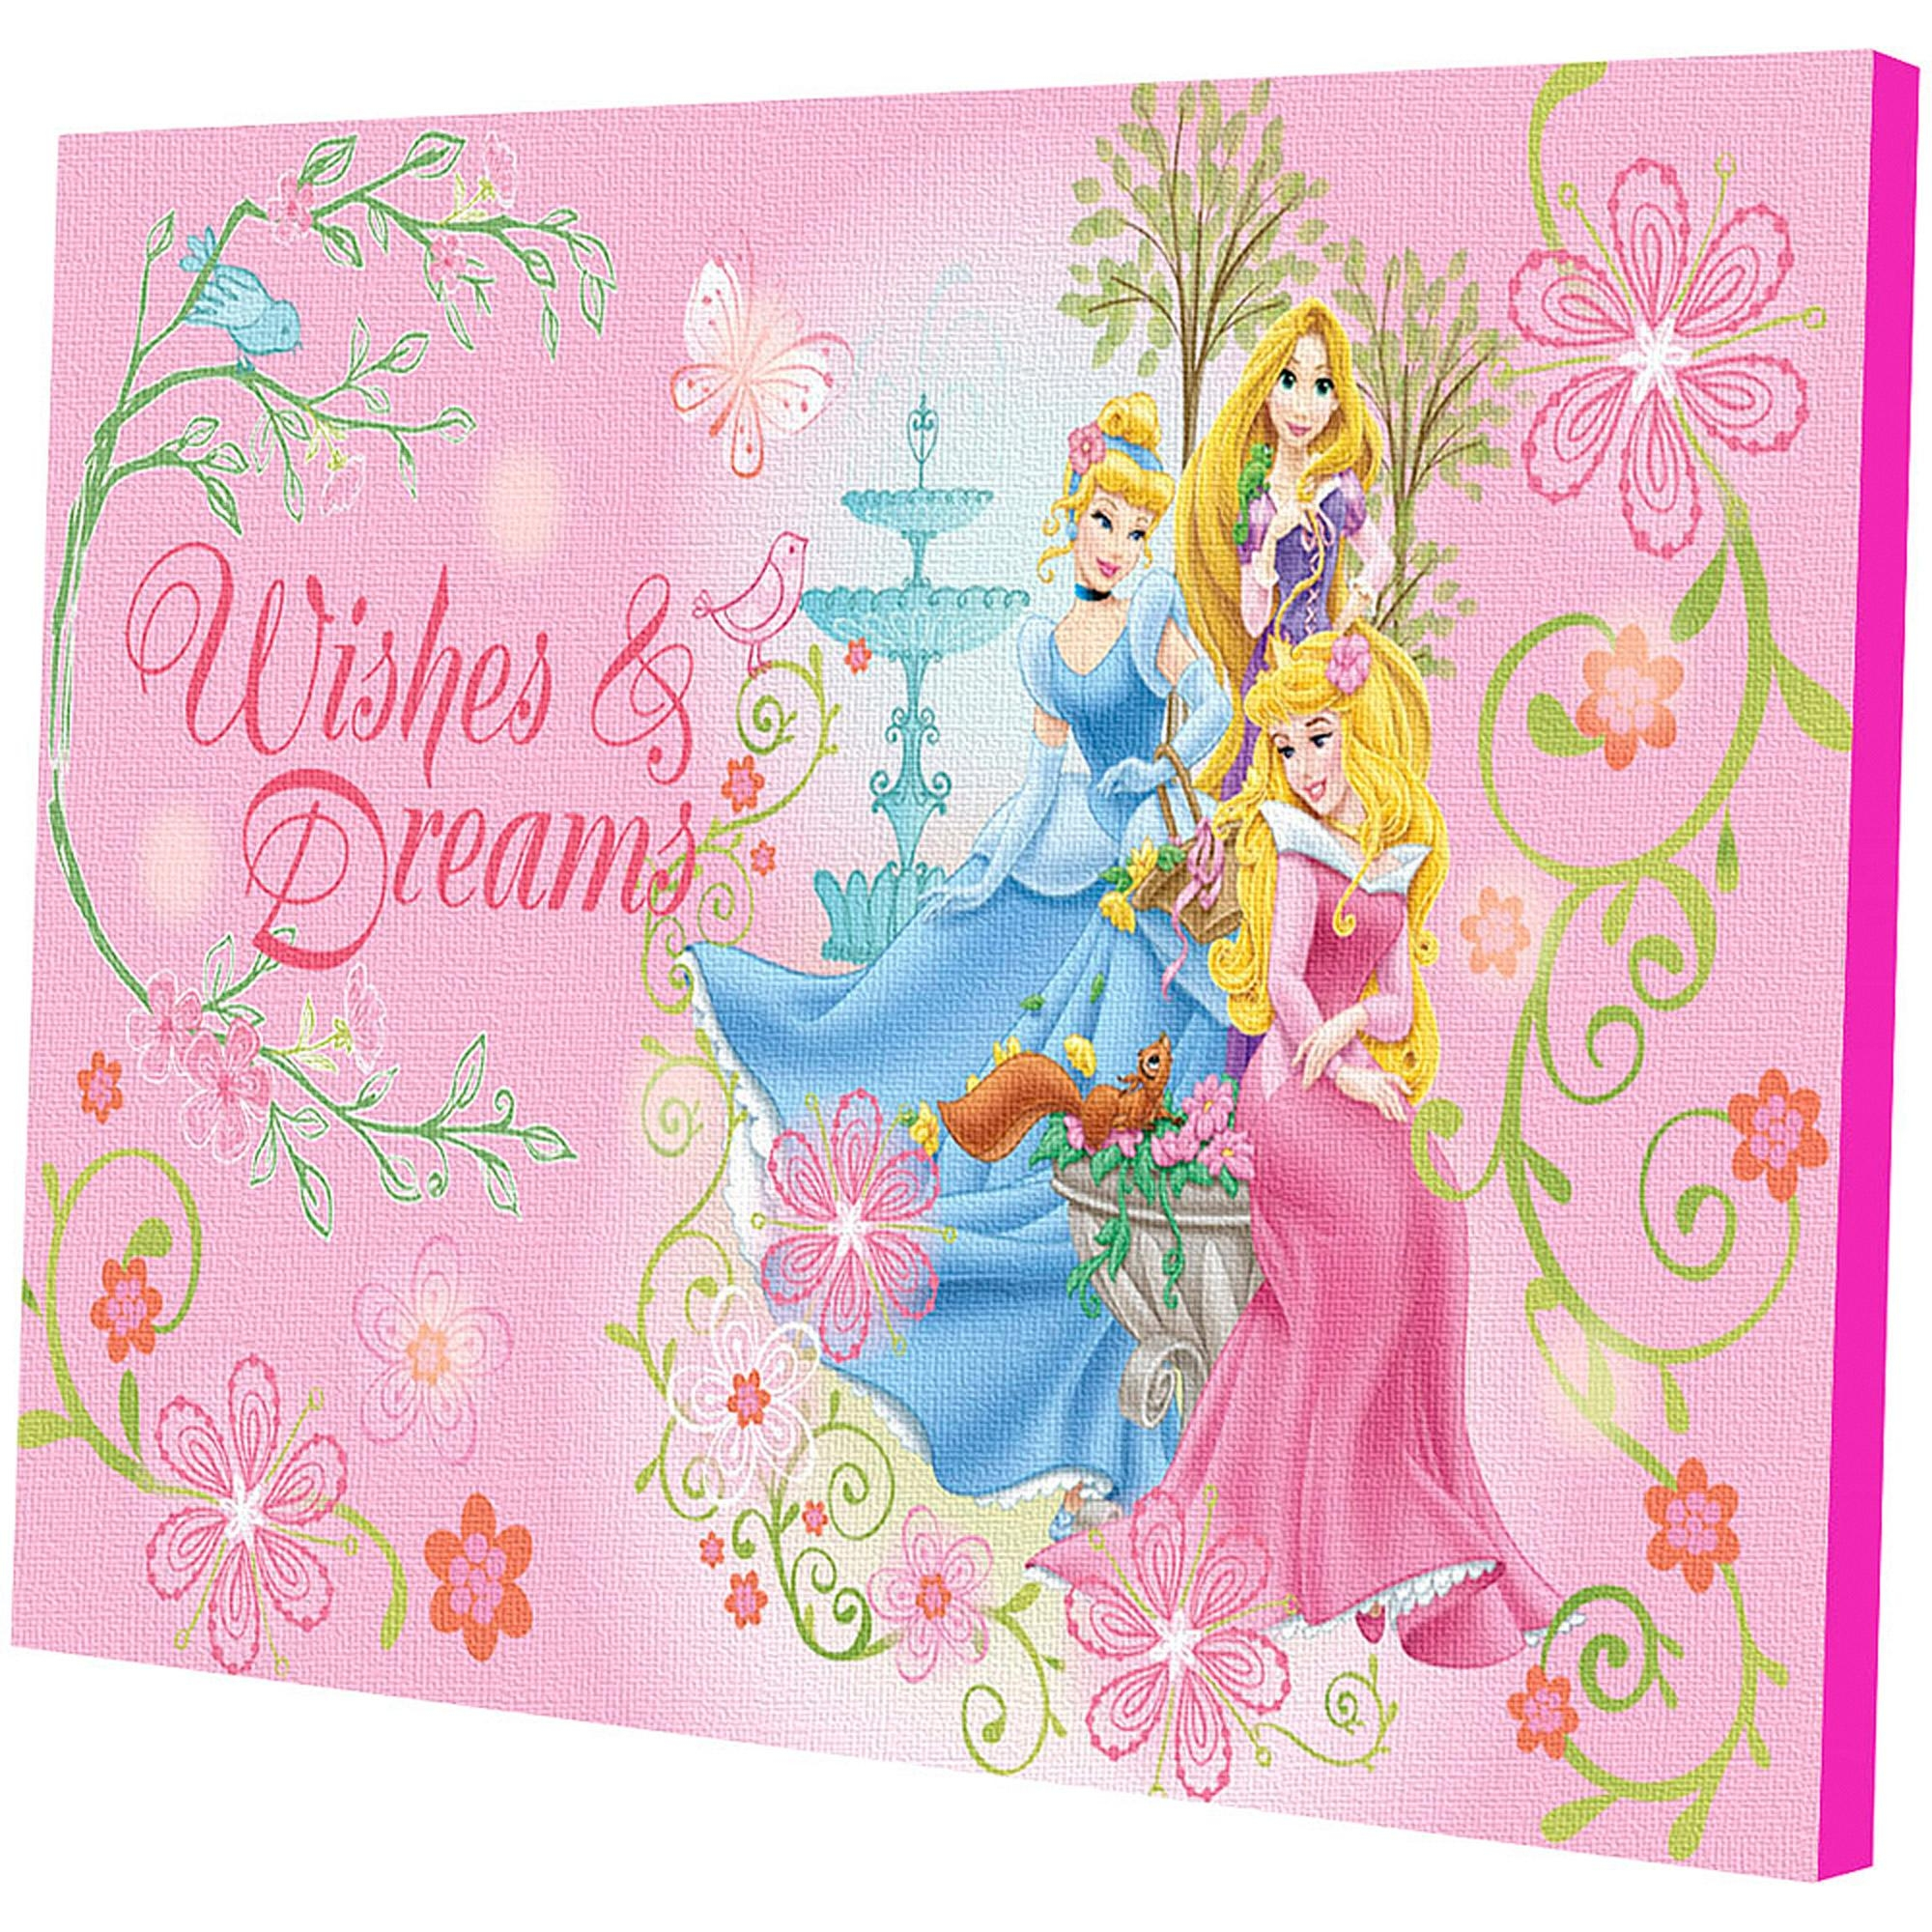 Disney Princess Led Light Up Canvas Wall Art – Walmart With Regard To Girls Canvas Wall Art (Image 11 of 20)